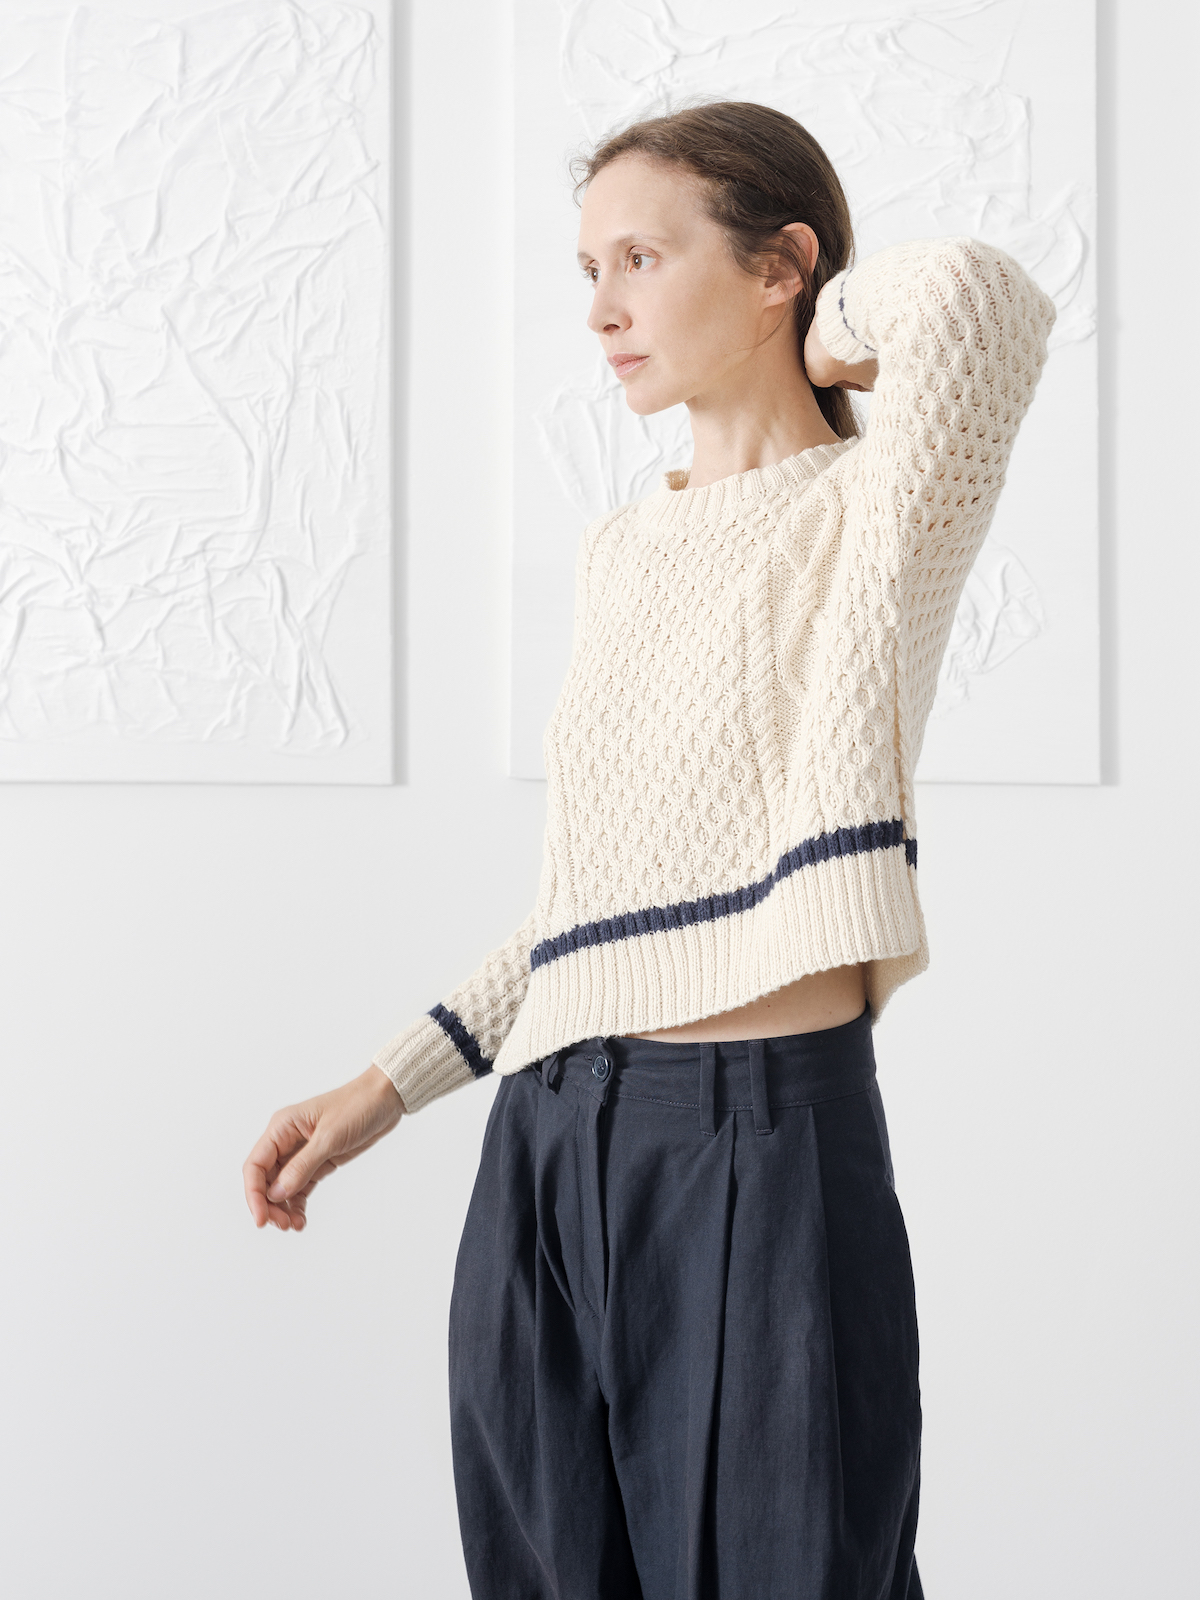 Cables sweater | KNITBRARY